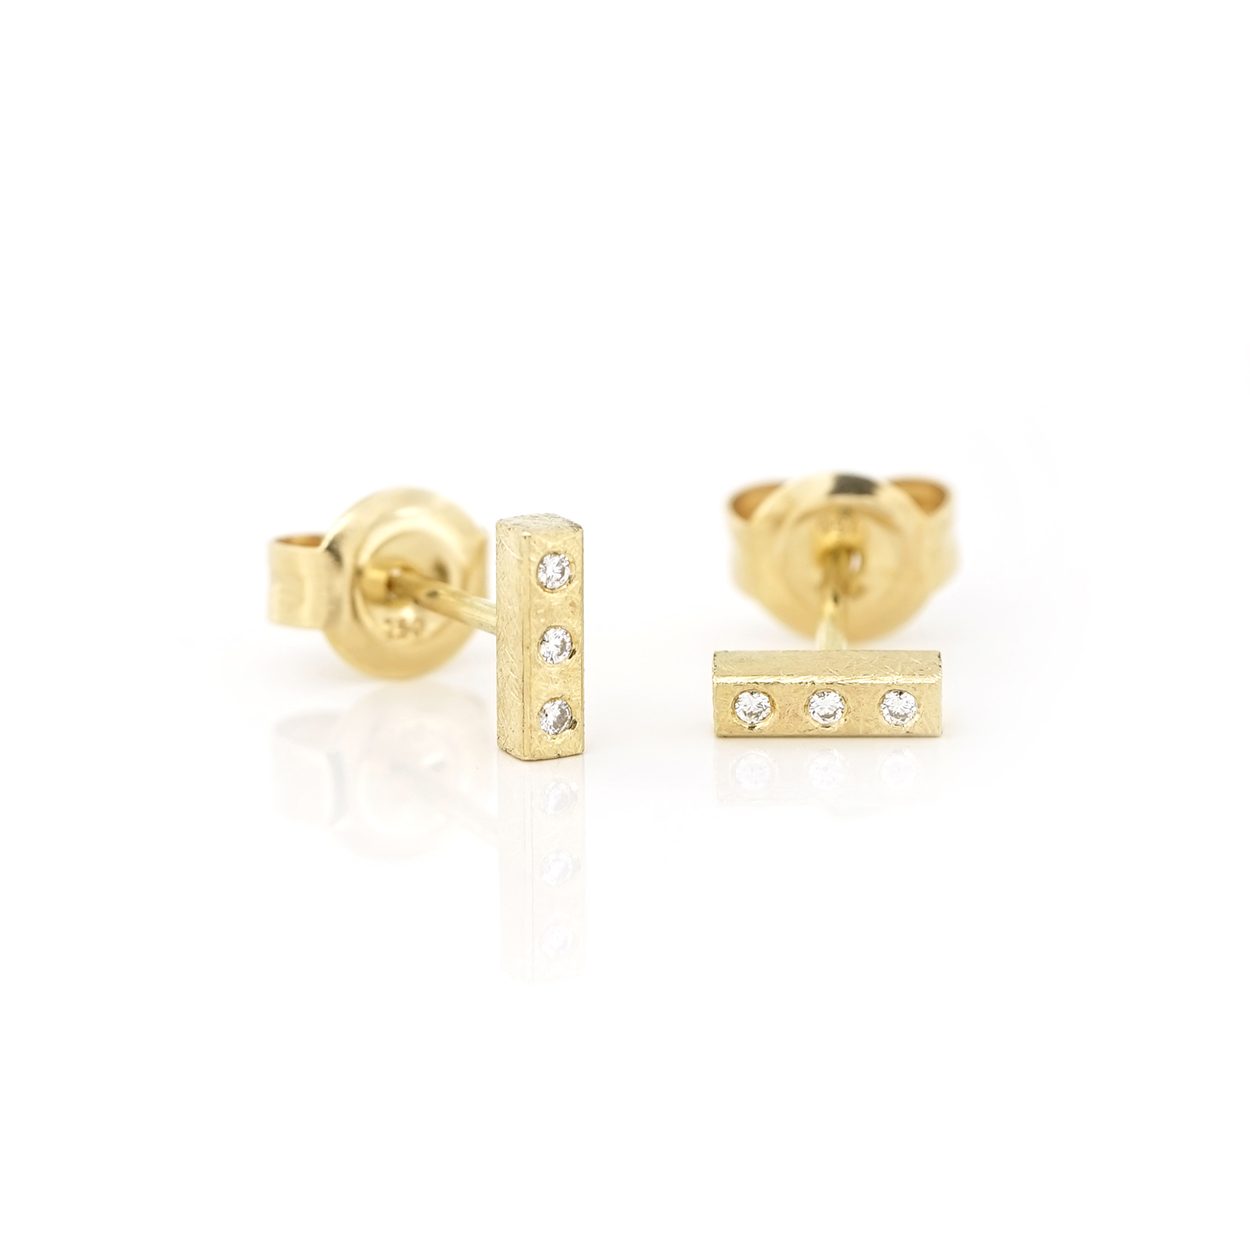 Gold bar studs with diamonds